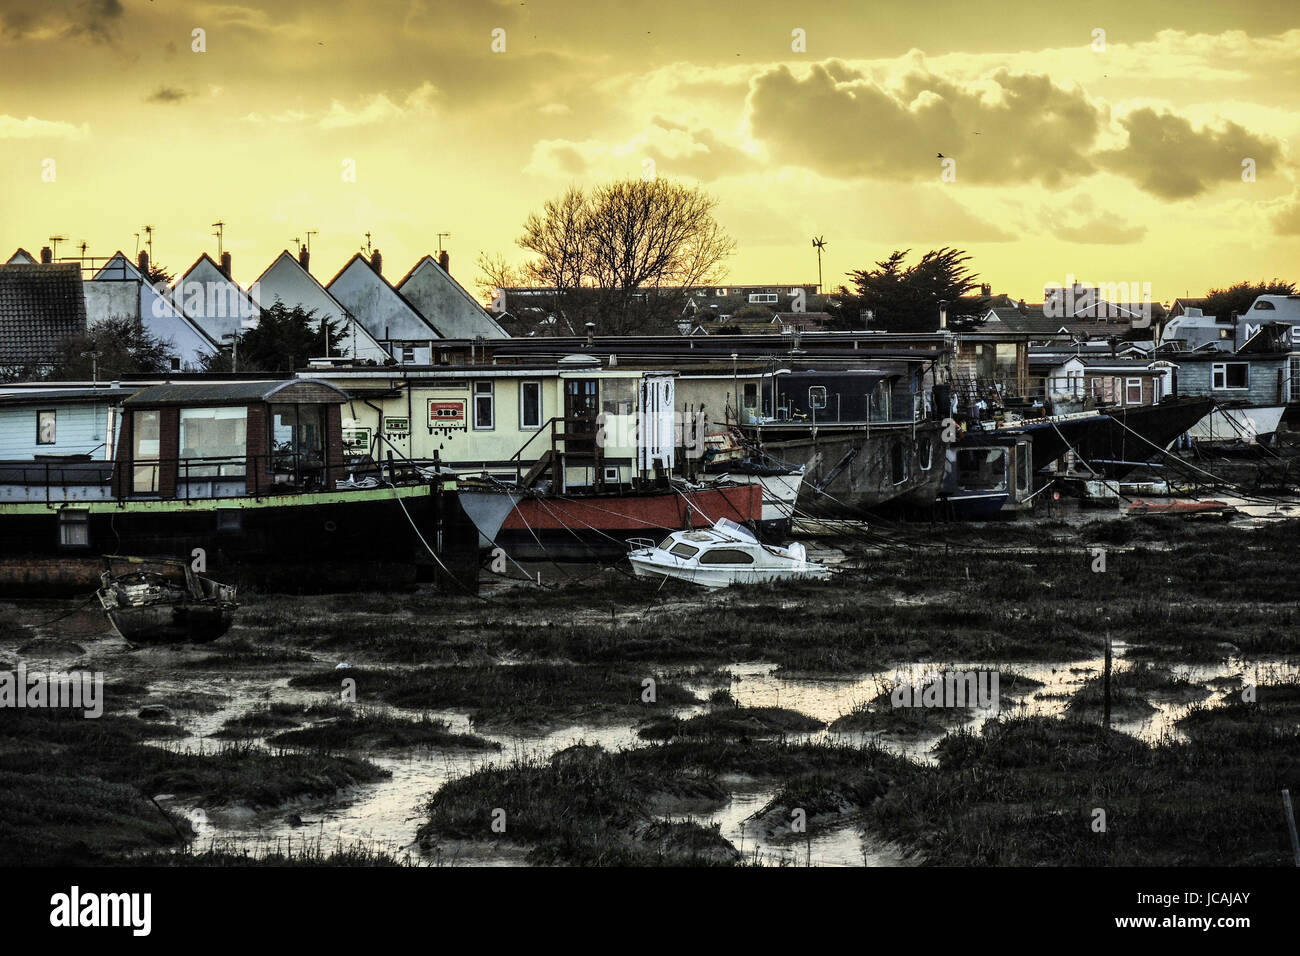 HOUSES BOATS ON ADUR RIVER - SHOREHAM BY SEA -SUSSEX ENGLAND © Frédéric BEAUMONT Stock Photo